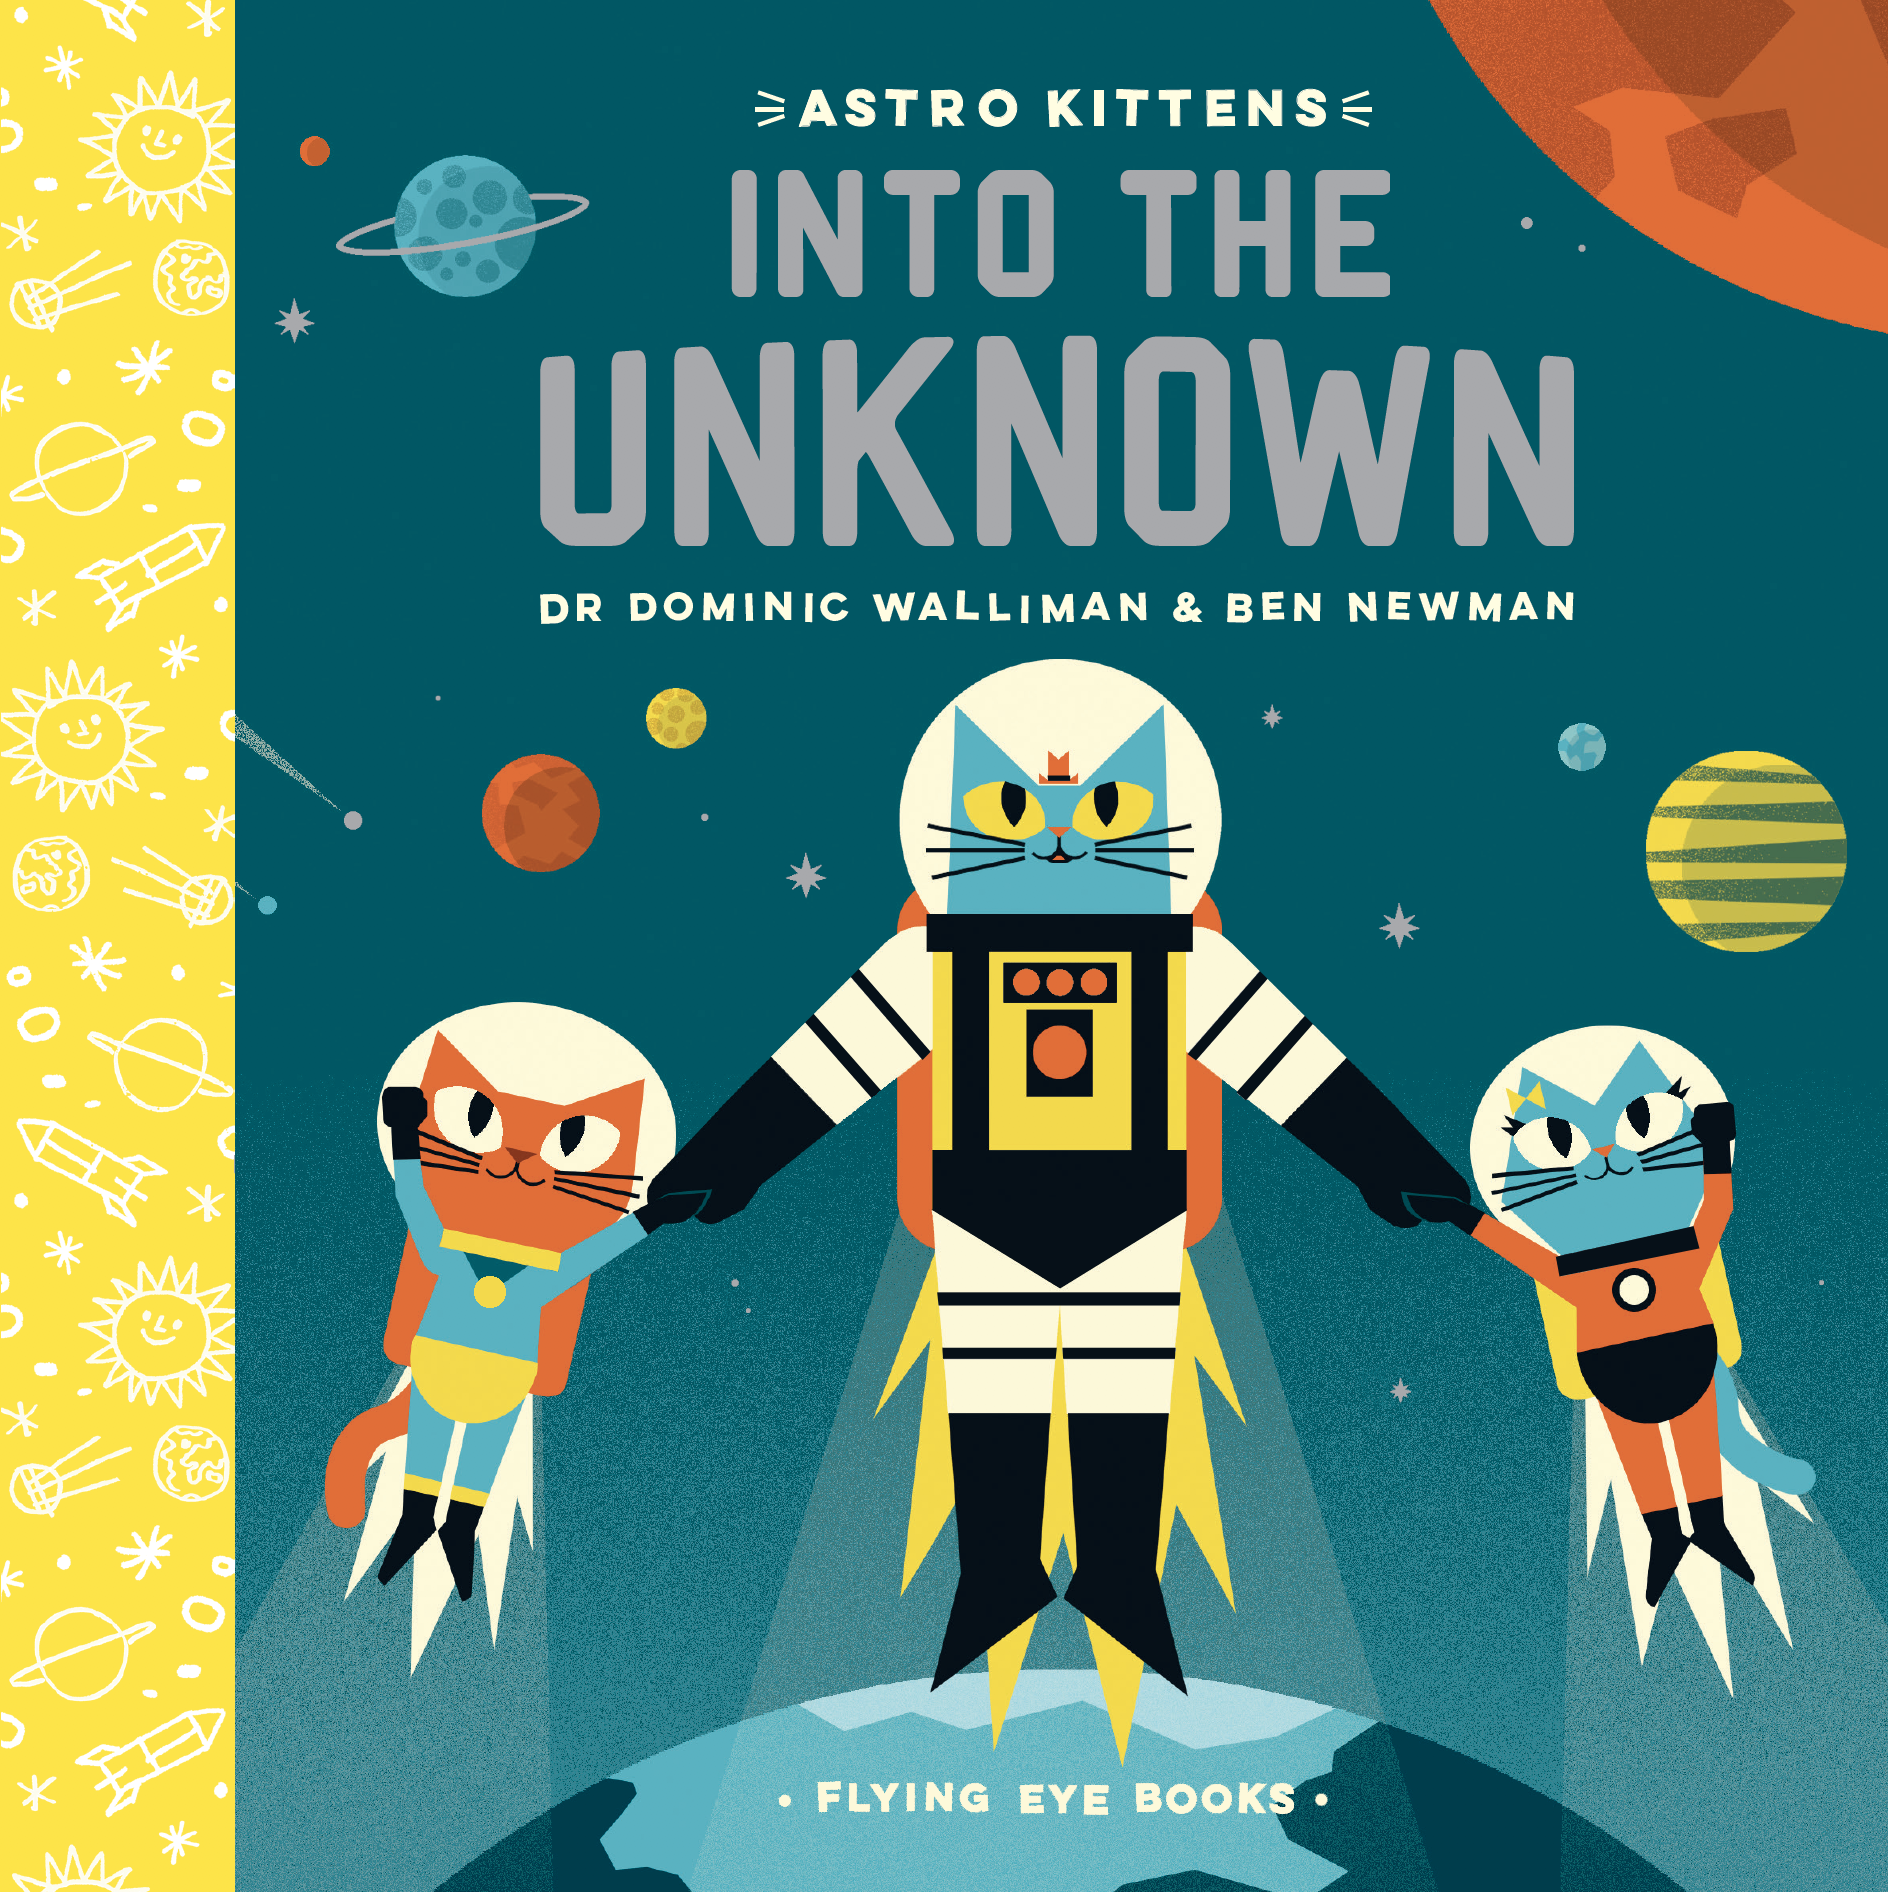 ASTRO KITTEN'S INTO THE UNKNOWN